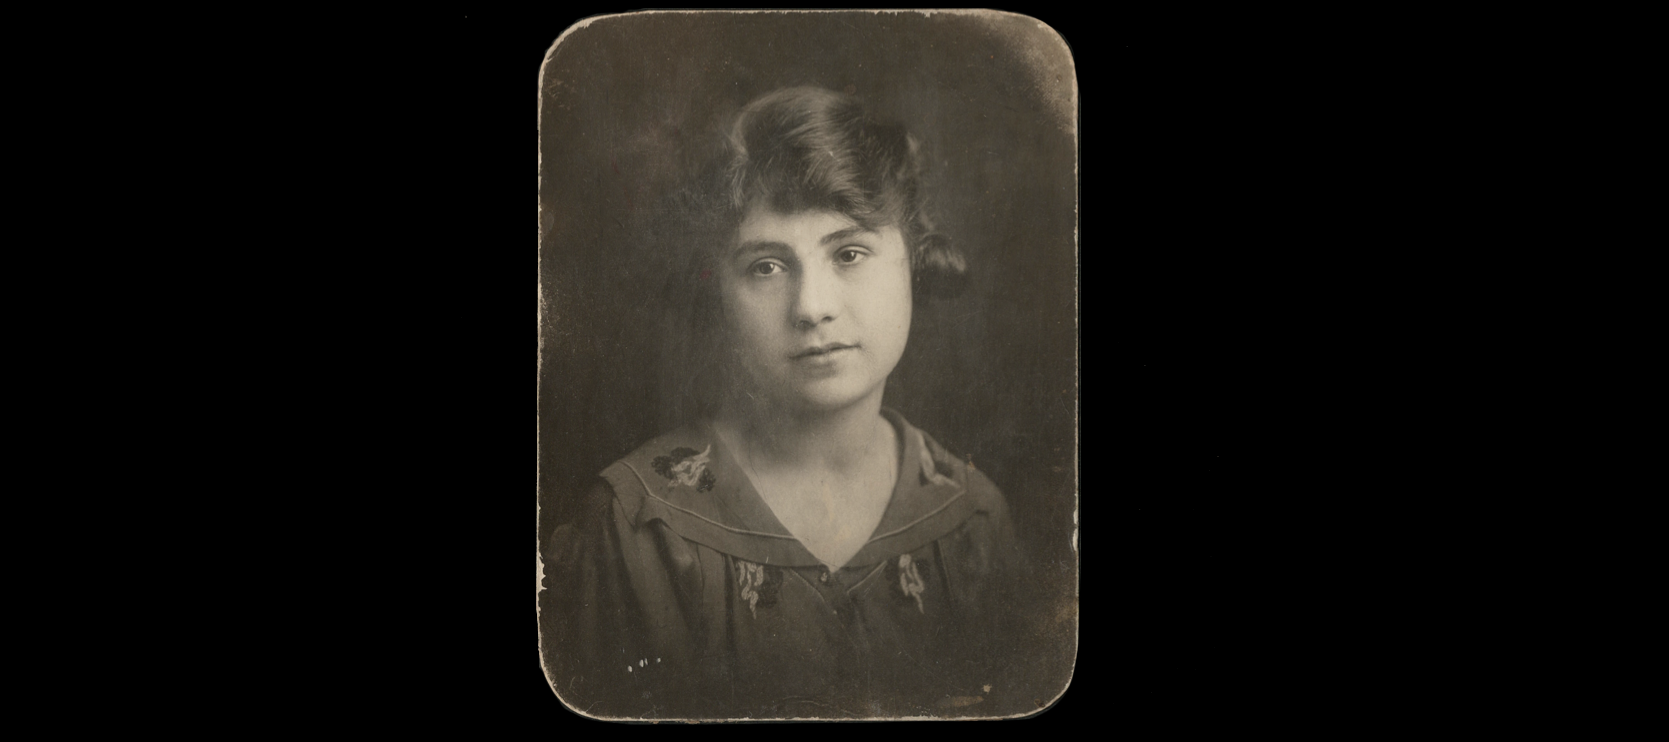 An antique sepia photo portrait of a light-skinned woman with brown hair staring longingly at the camera.